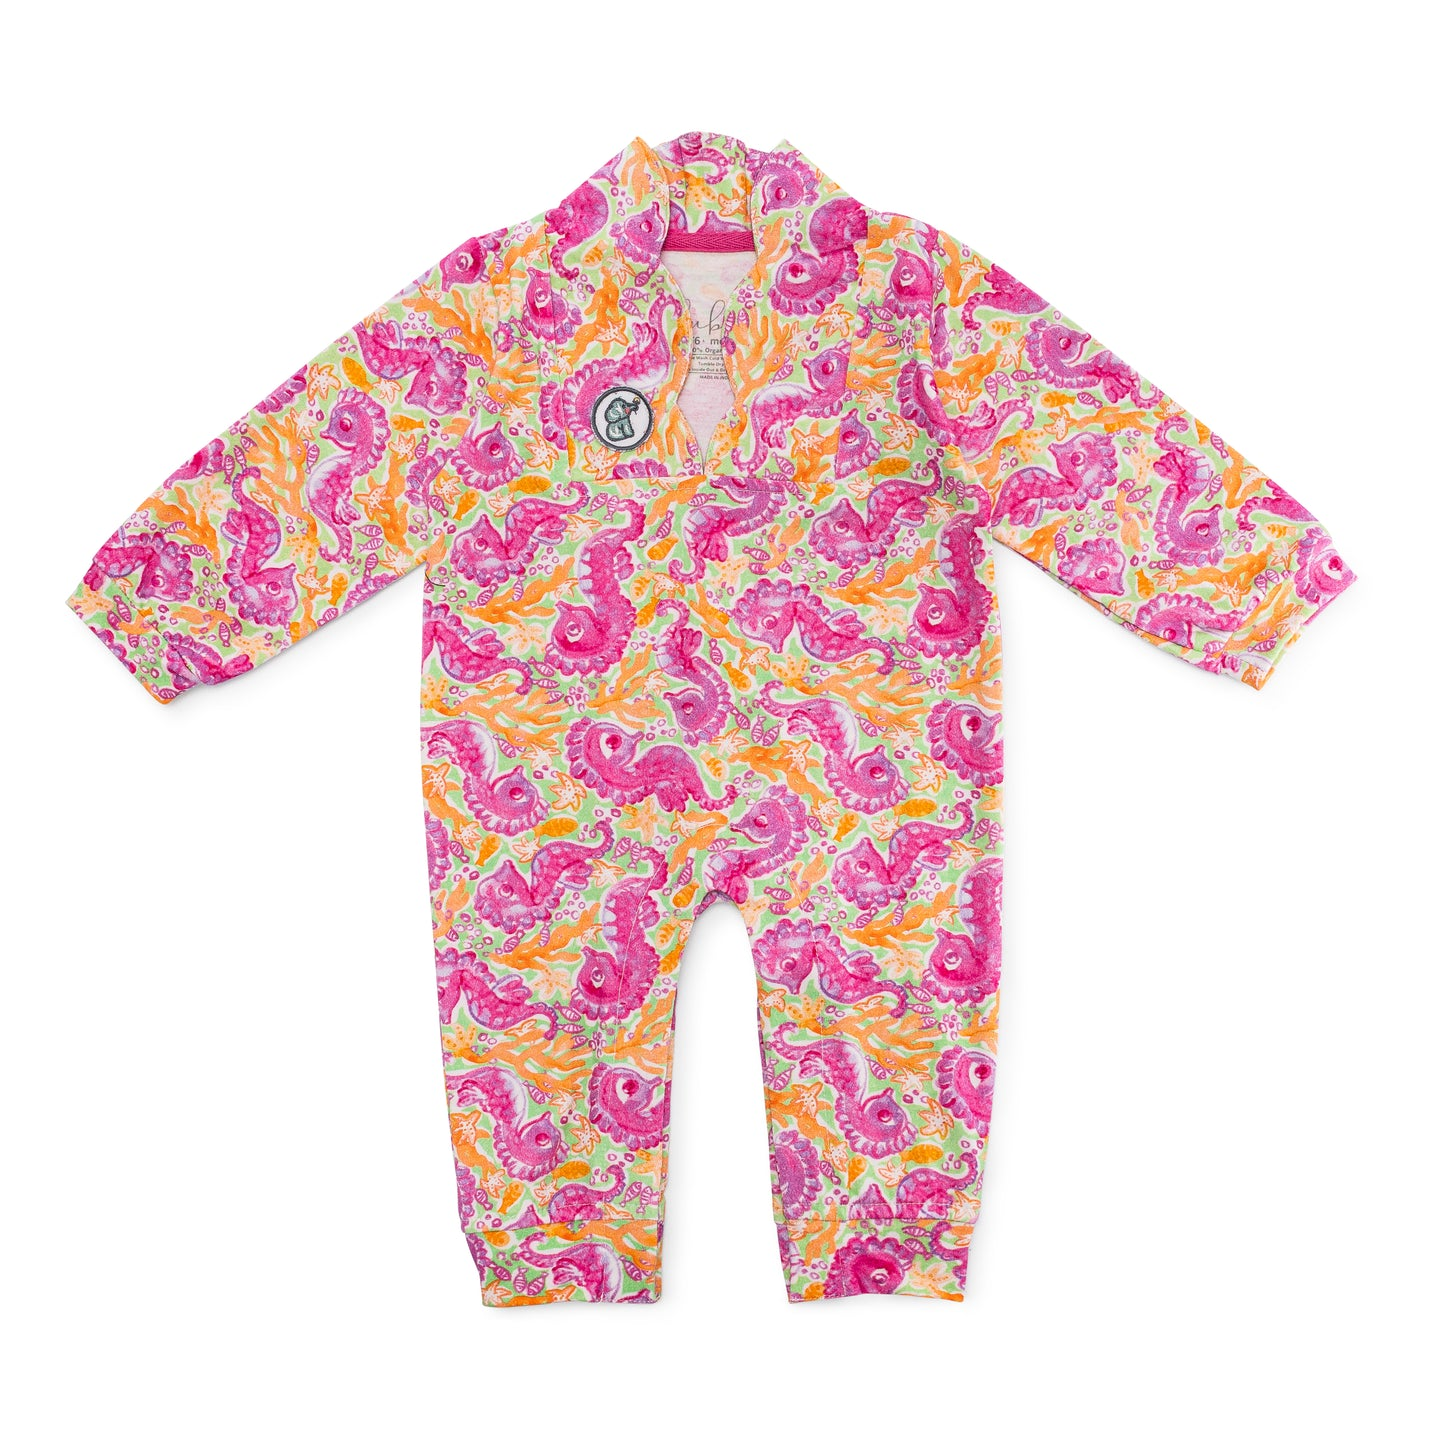 Bubsie Sloan the Seahorse Organic Cotton Baby Girls Onesie Romper